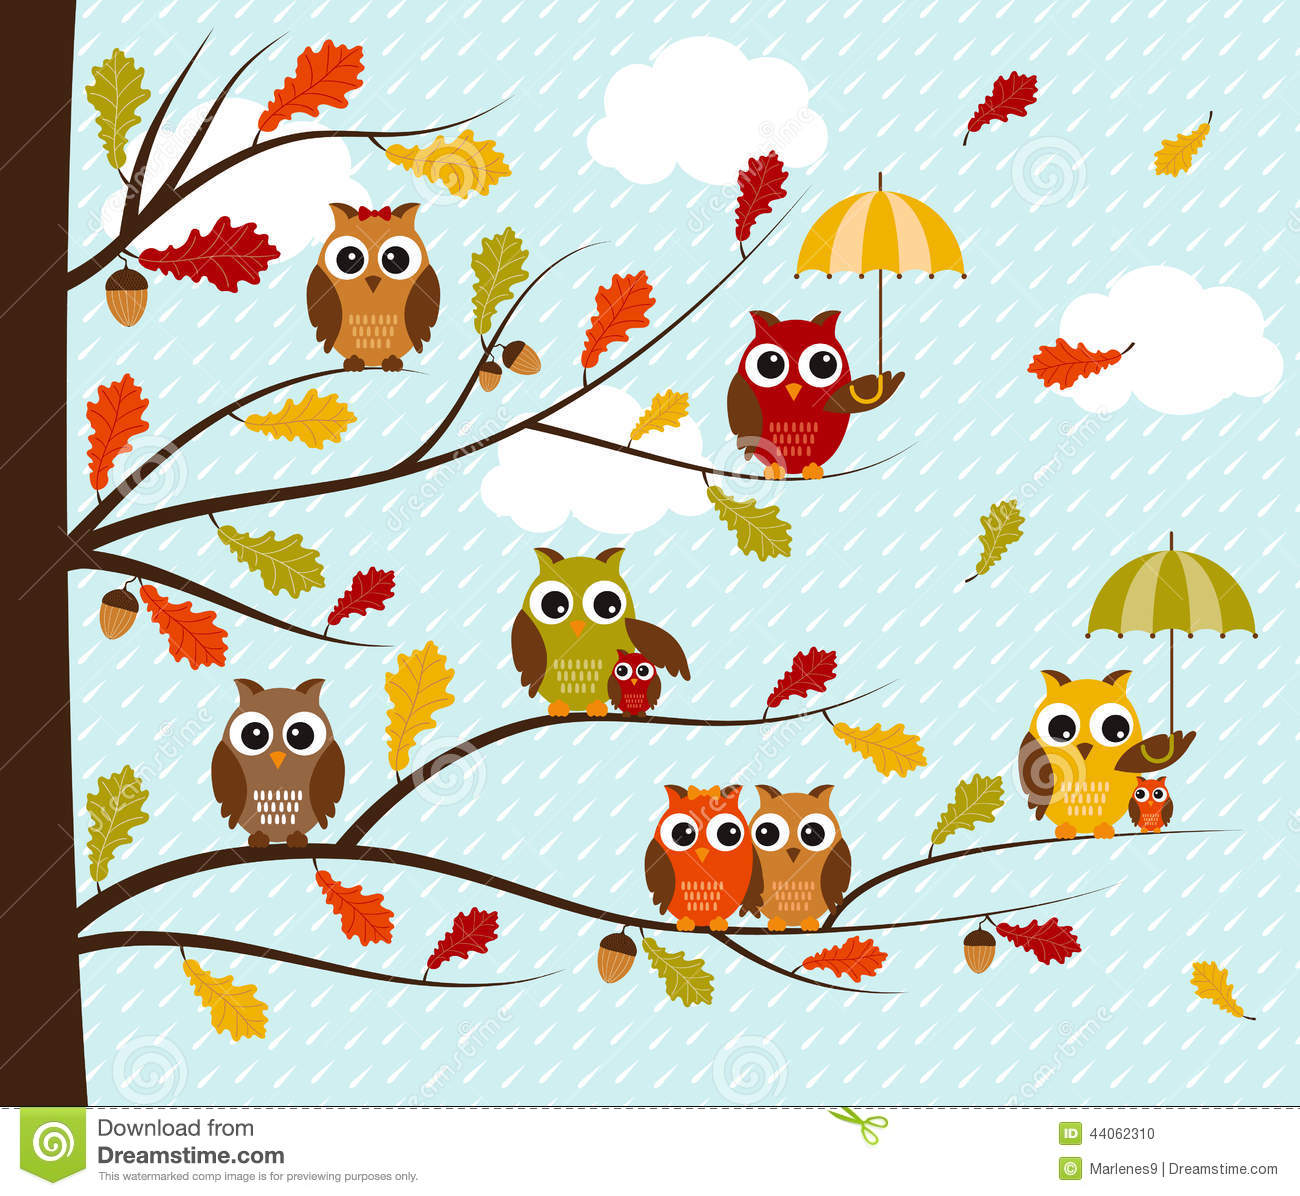 Fall Owls Stock Vector - Image: 44062310